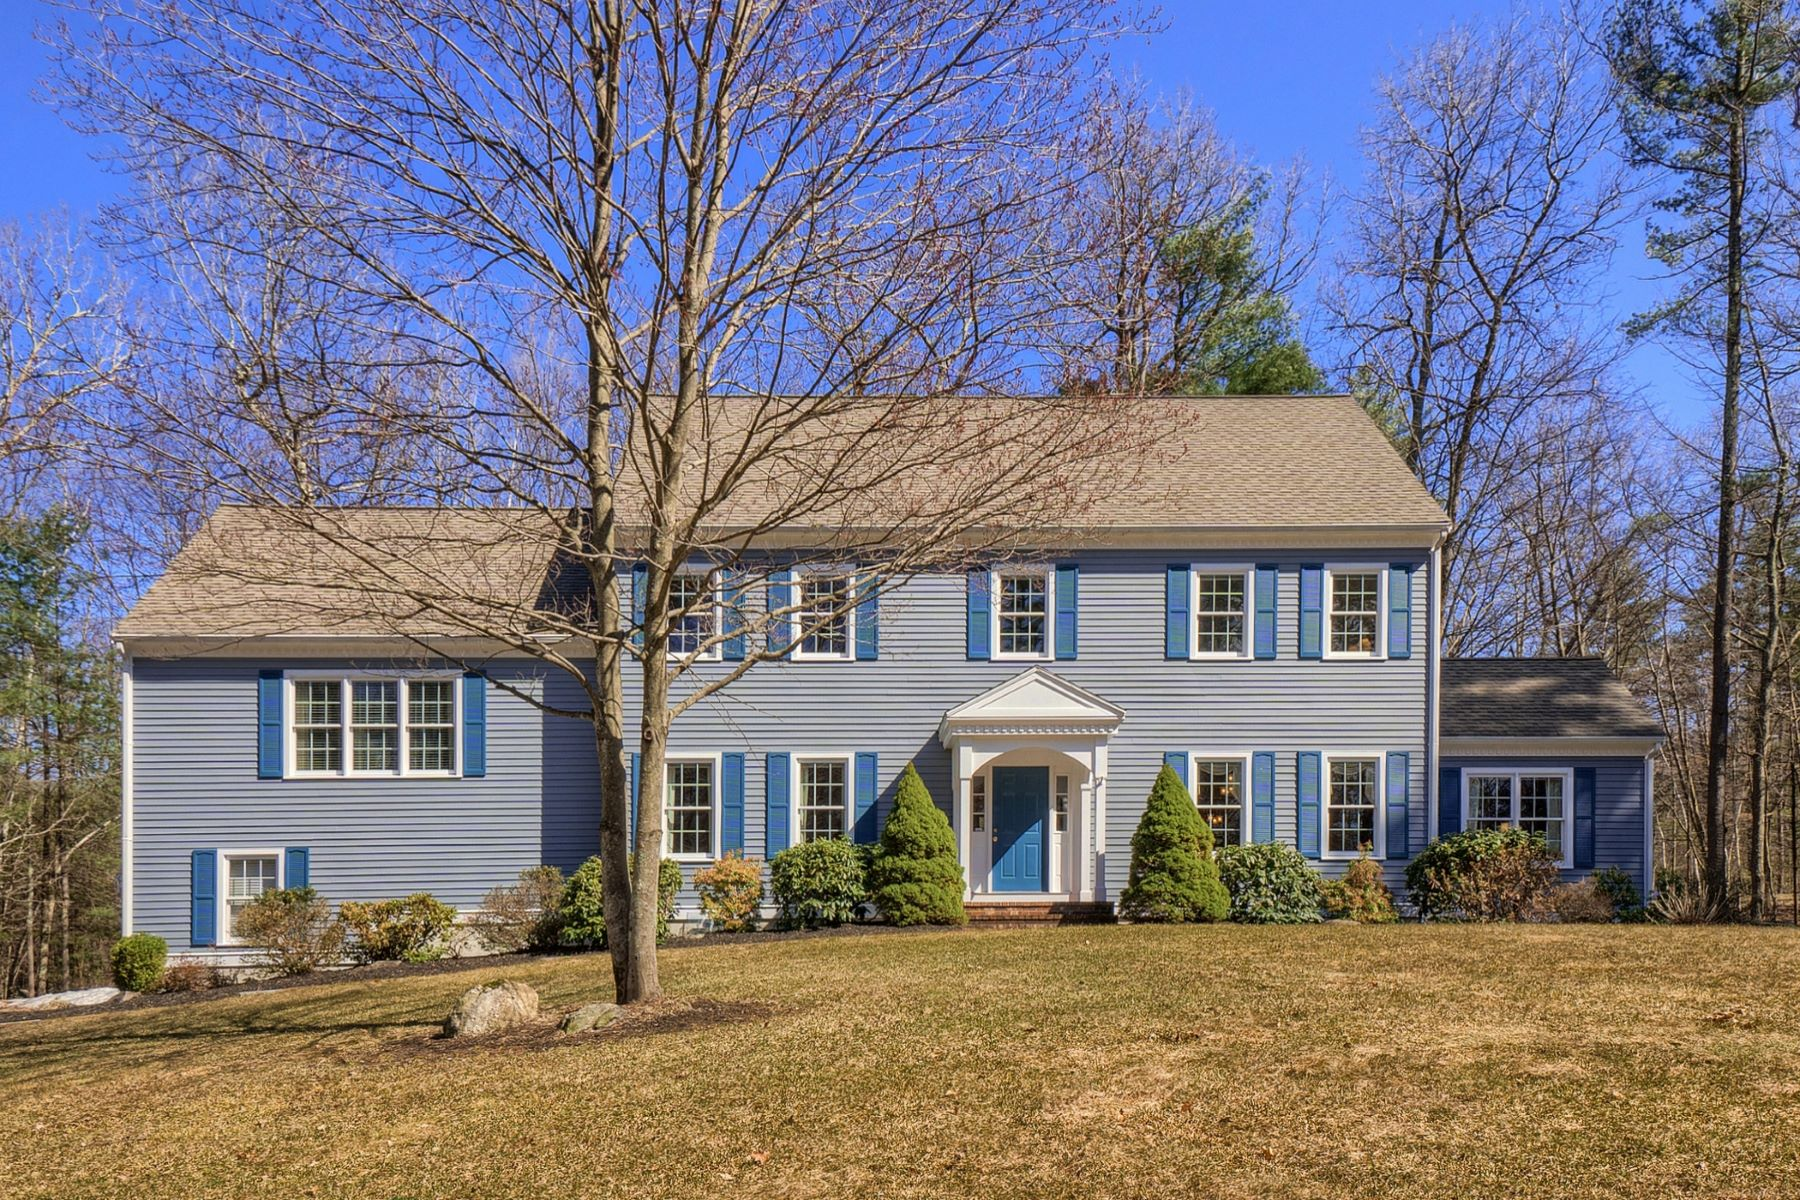 Single Family Home for Active at 525 Old Harvard Road, Boxborough 525 Old Harvard Rd Boxborough, Massachusetts 01719 United States